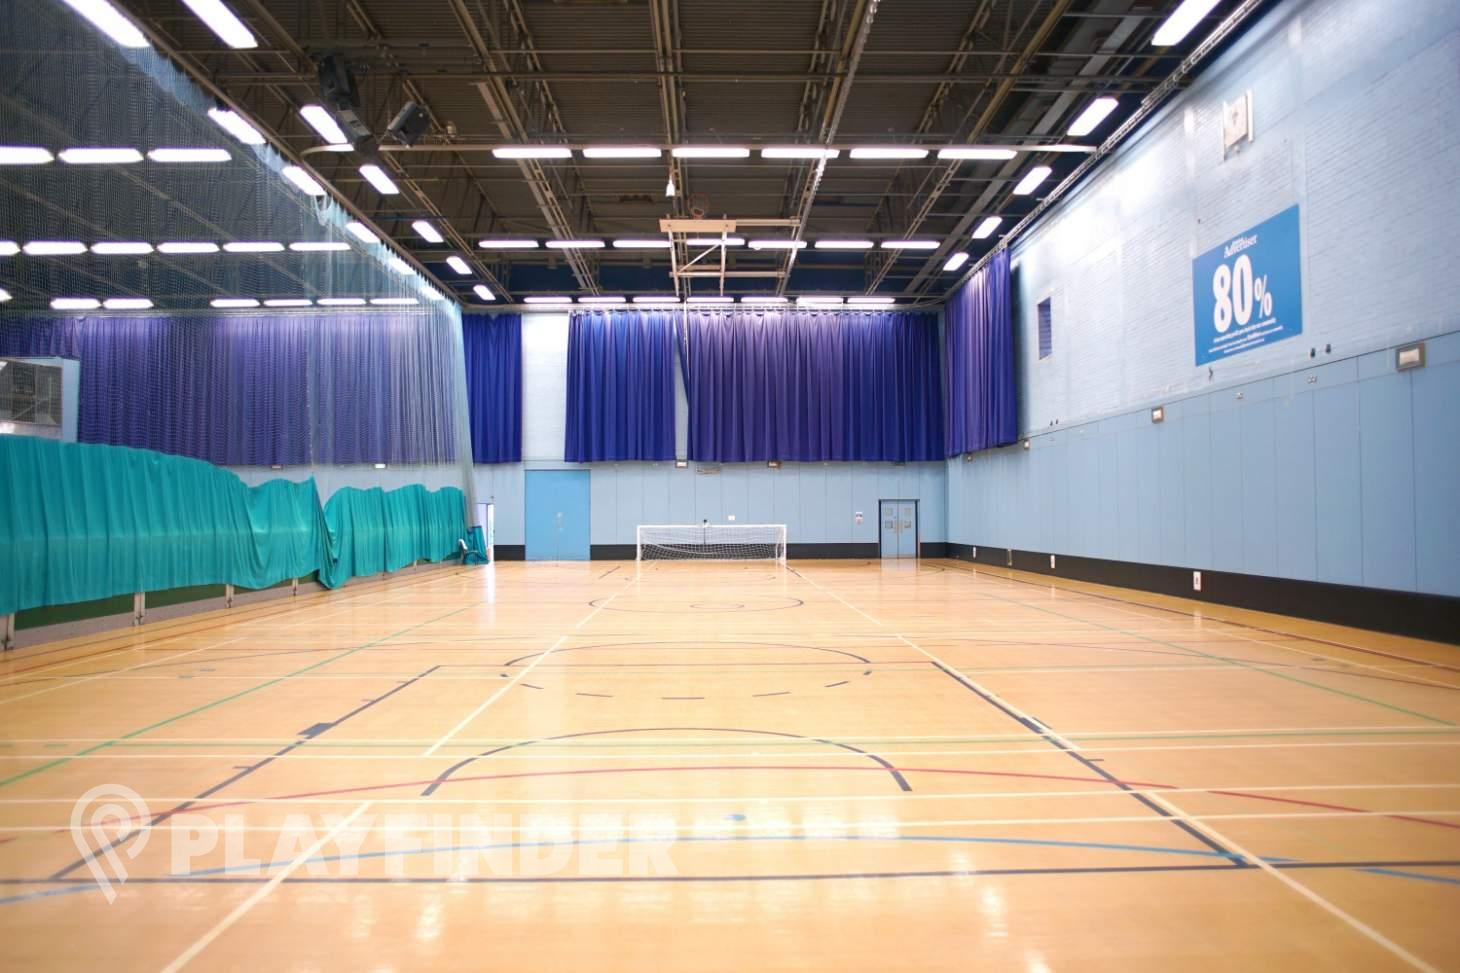 Magnet Leisure Centre 5 a side | Indoor football pitch